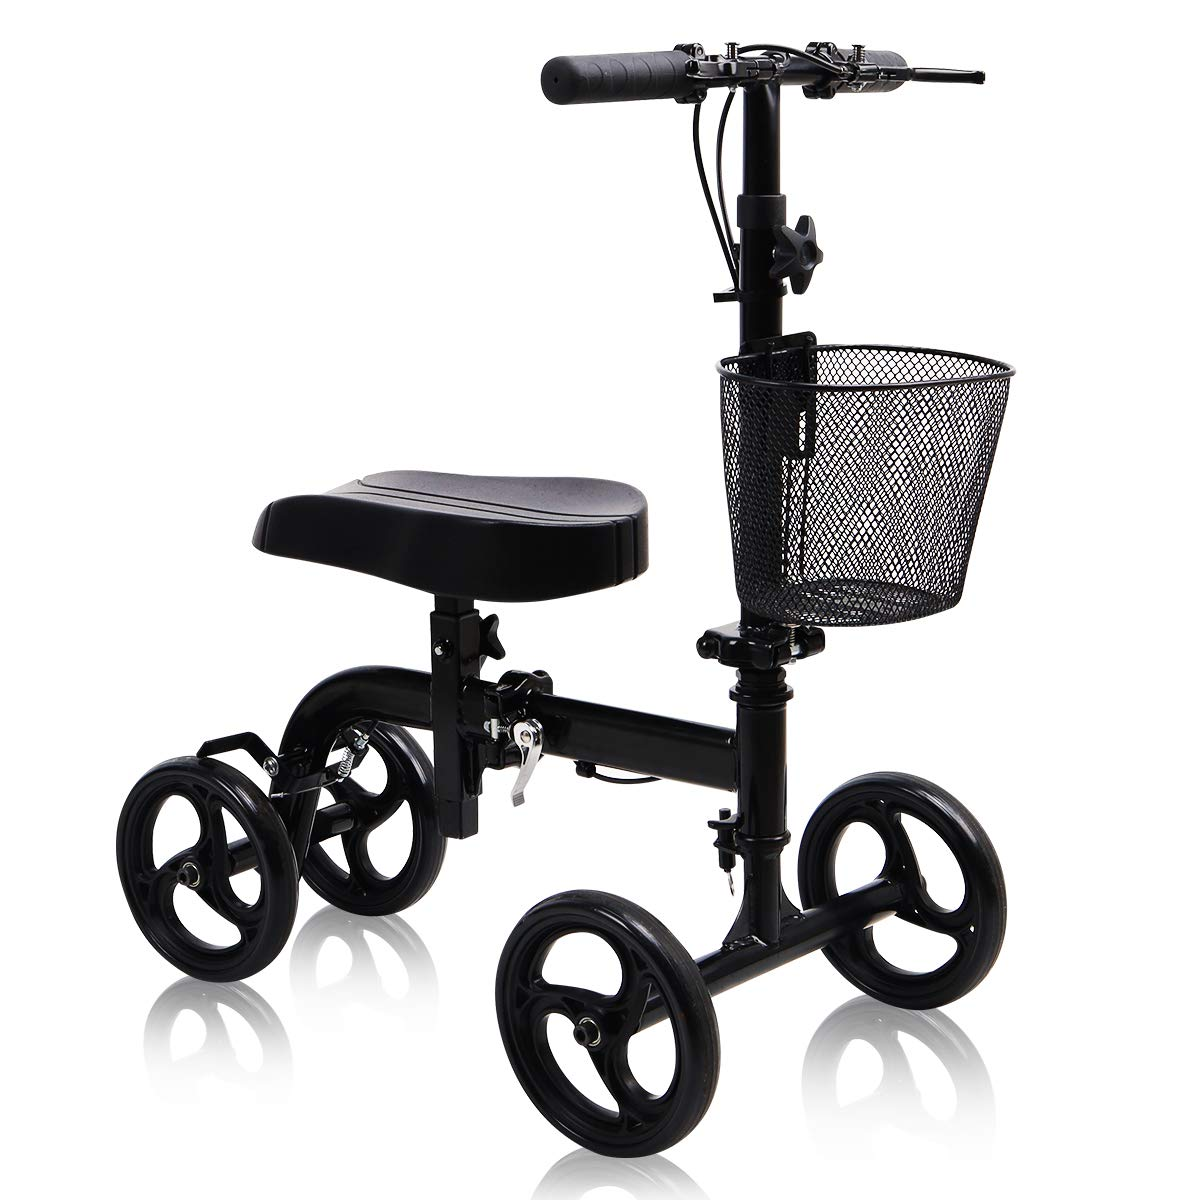 Give Me Knee Scooter - Ultra Compact & Portable Knee Walker with Basket Crutches Alternative in Black by Give Me